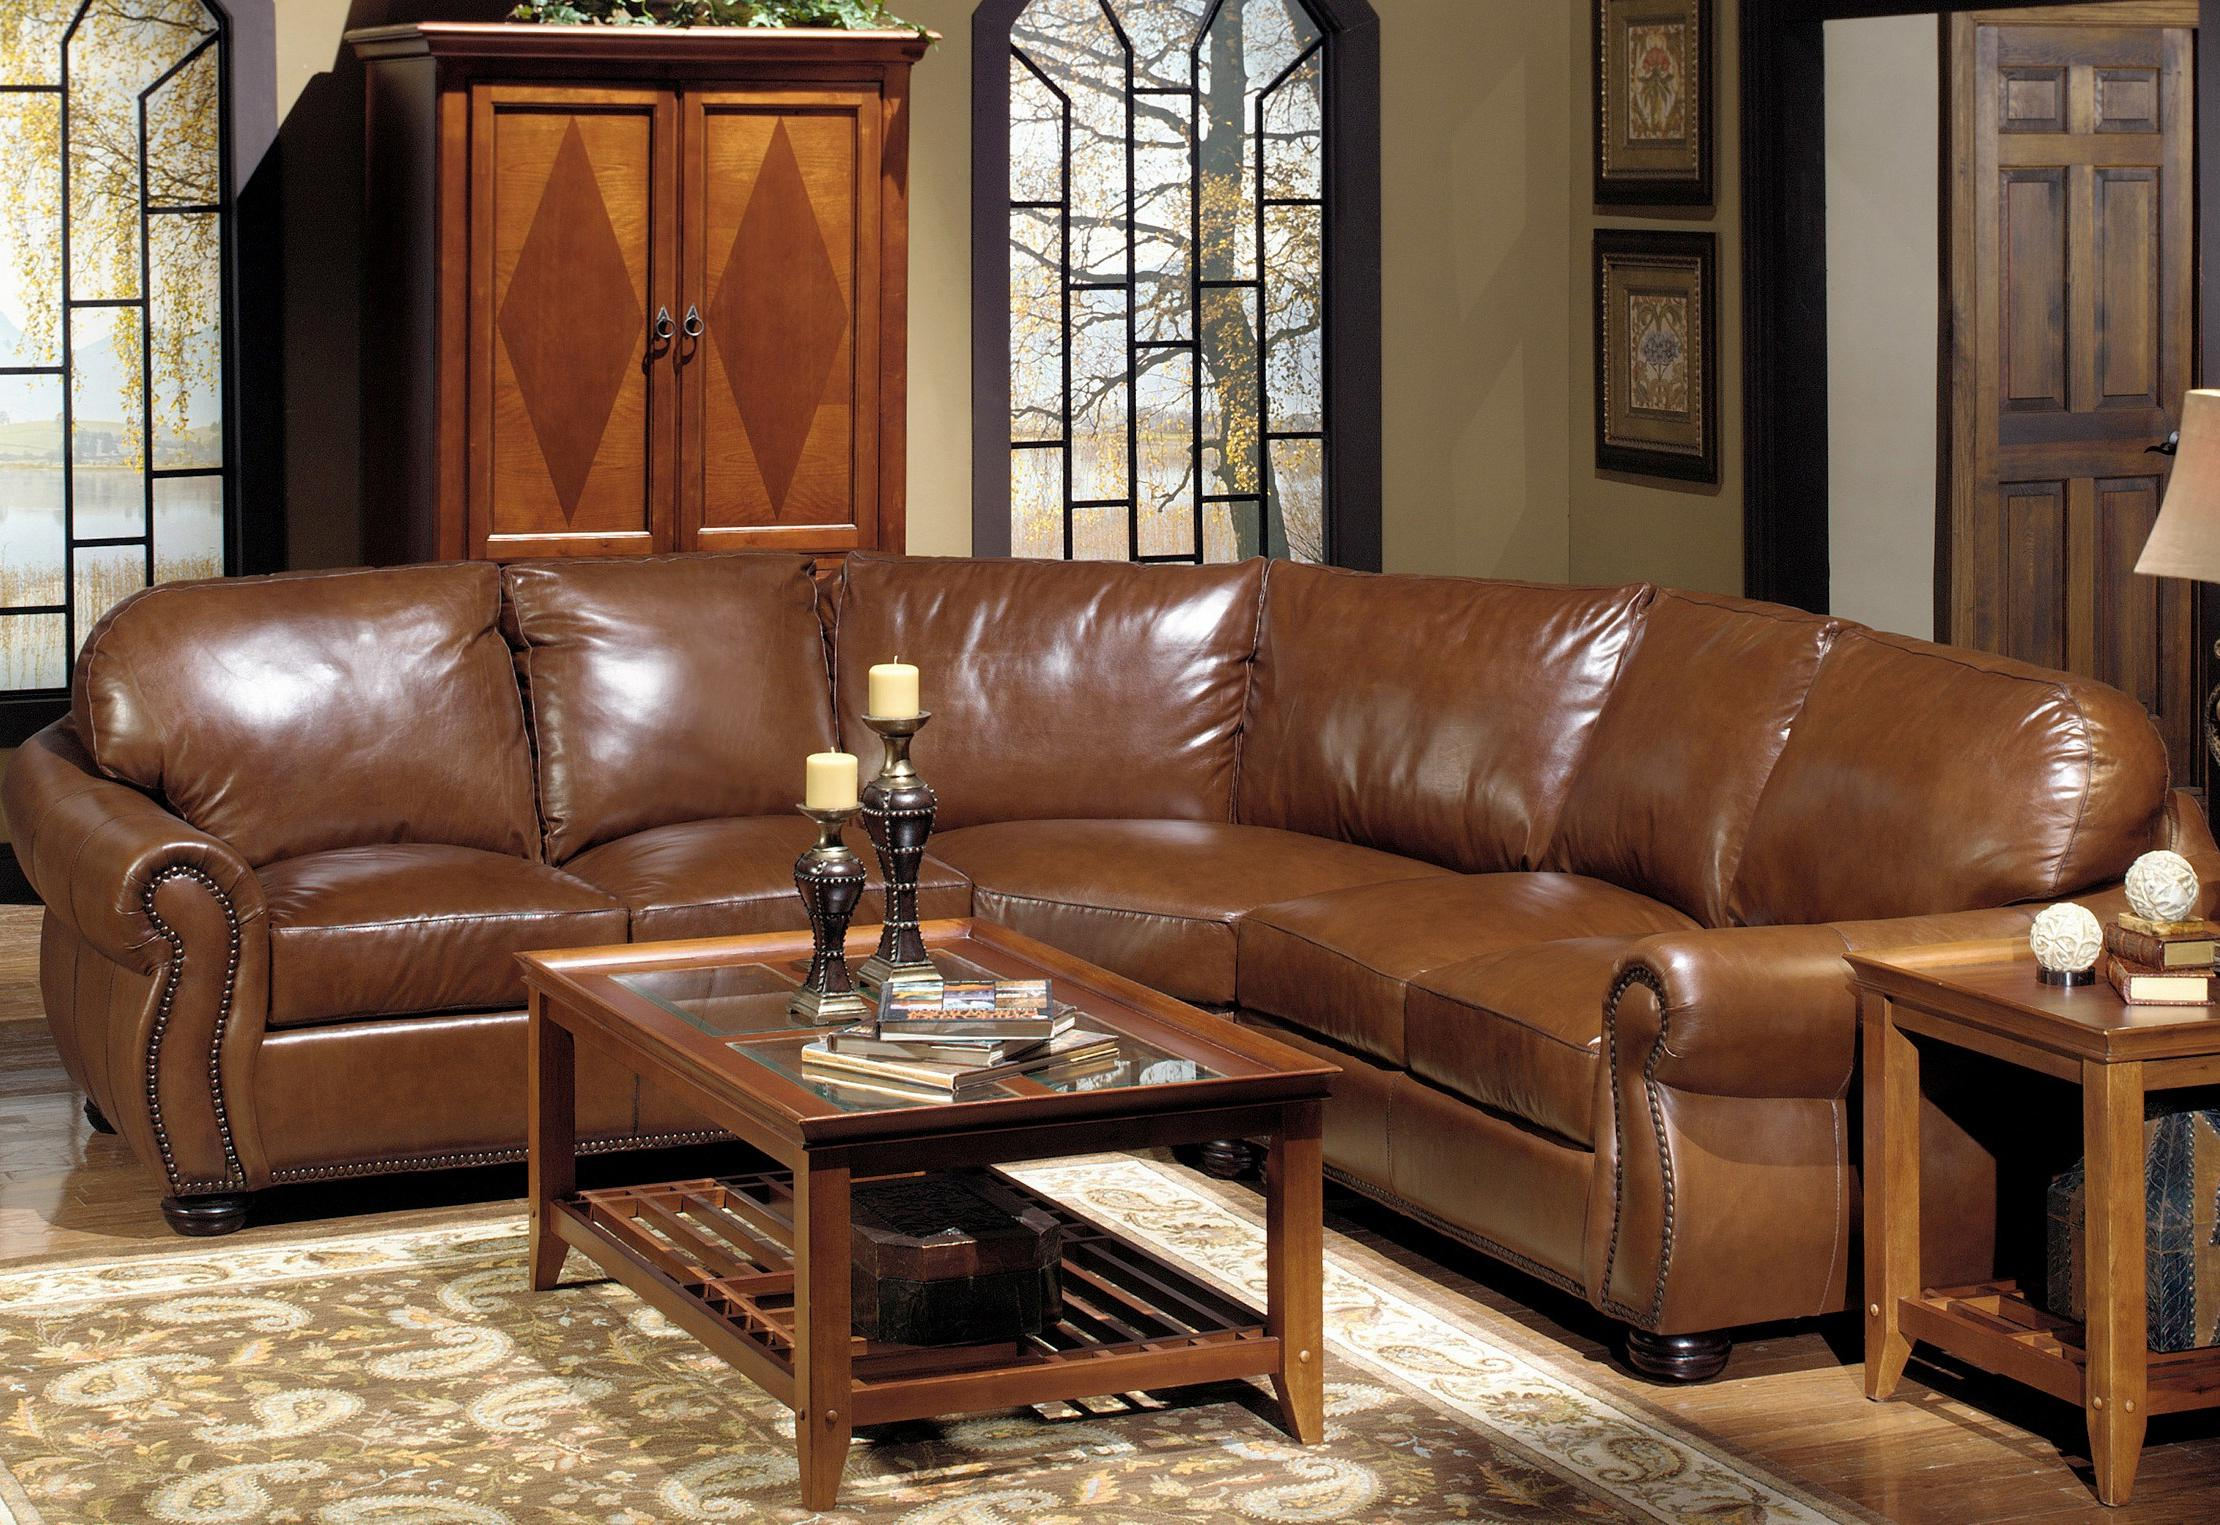 USA Premium Leather 4025 Leather Sectional Sofa with Decorative